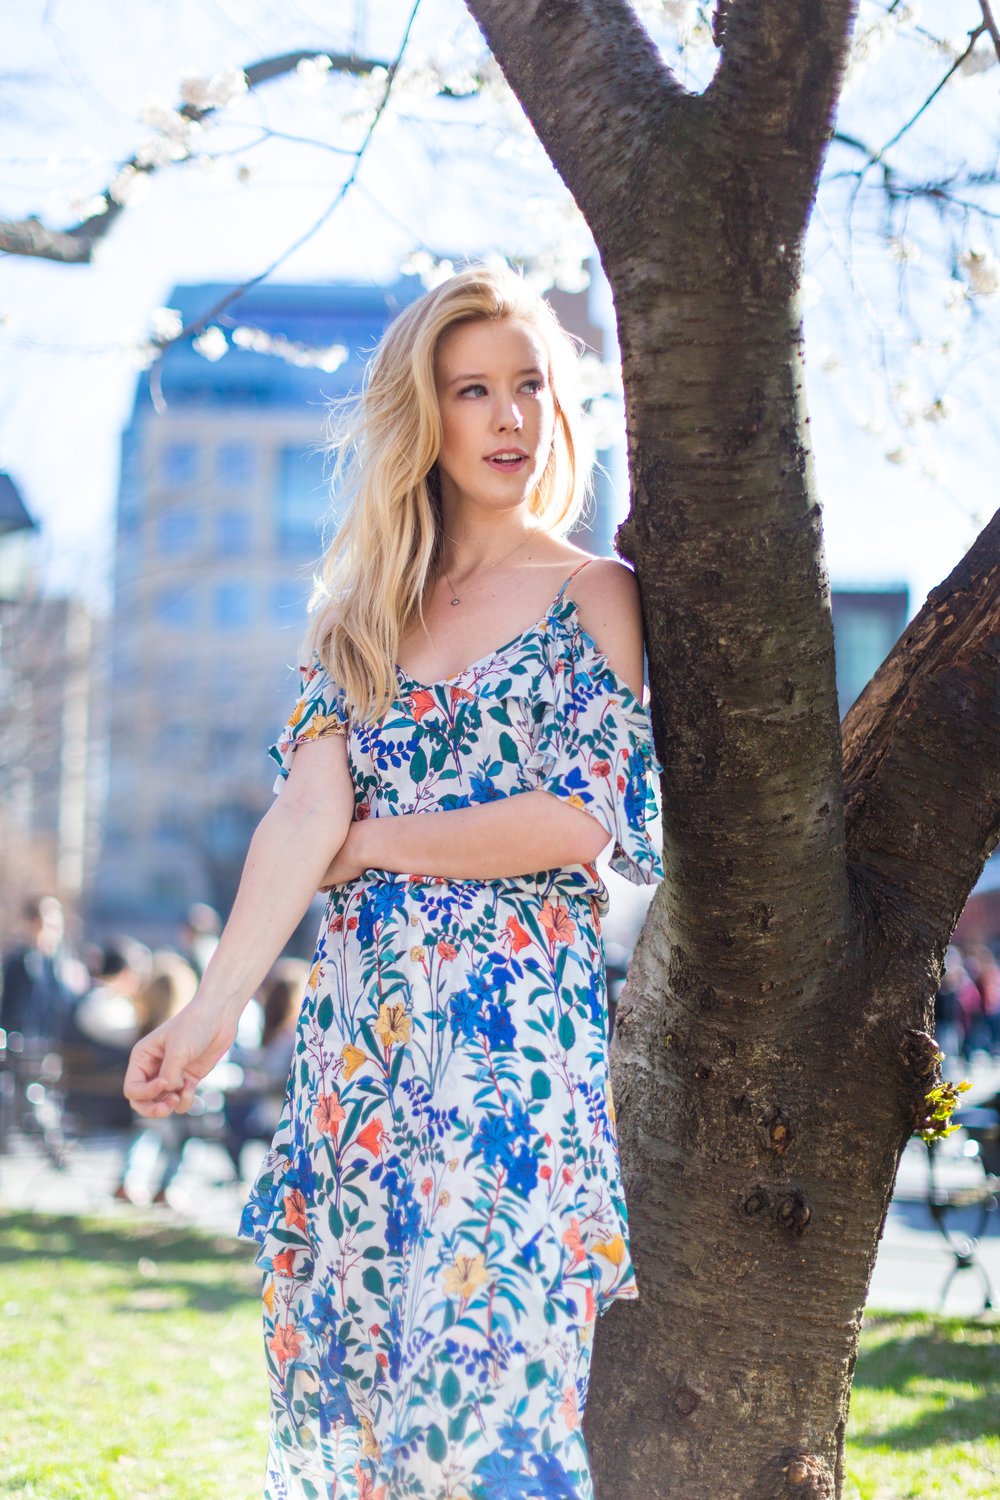 Ruffle Spring Floral Dress Washington Square Park NYC-7.jpg